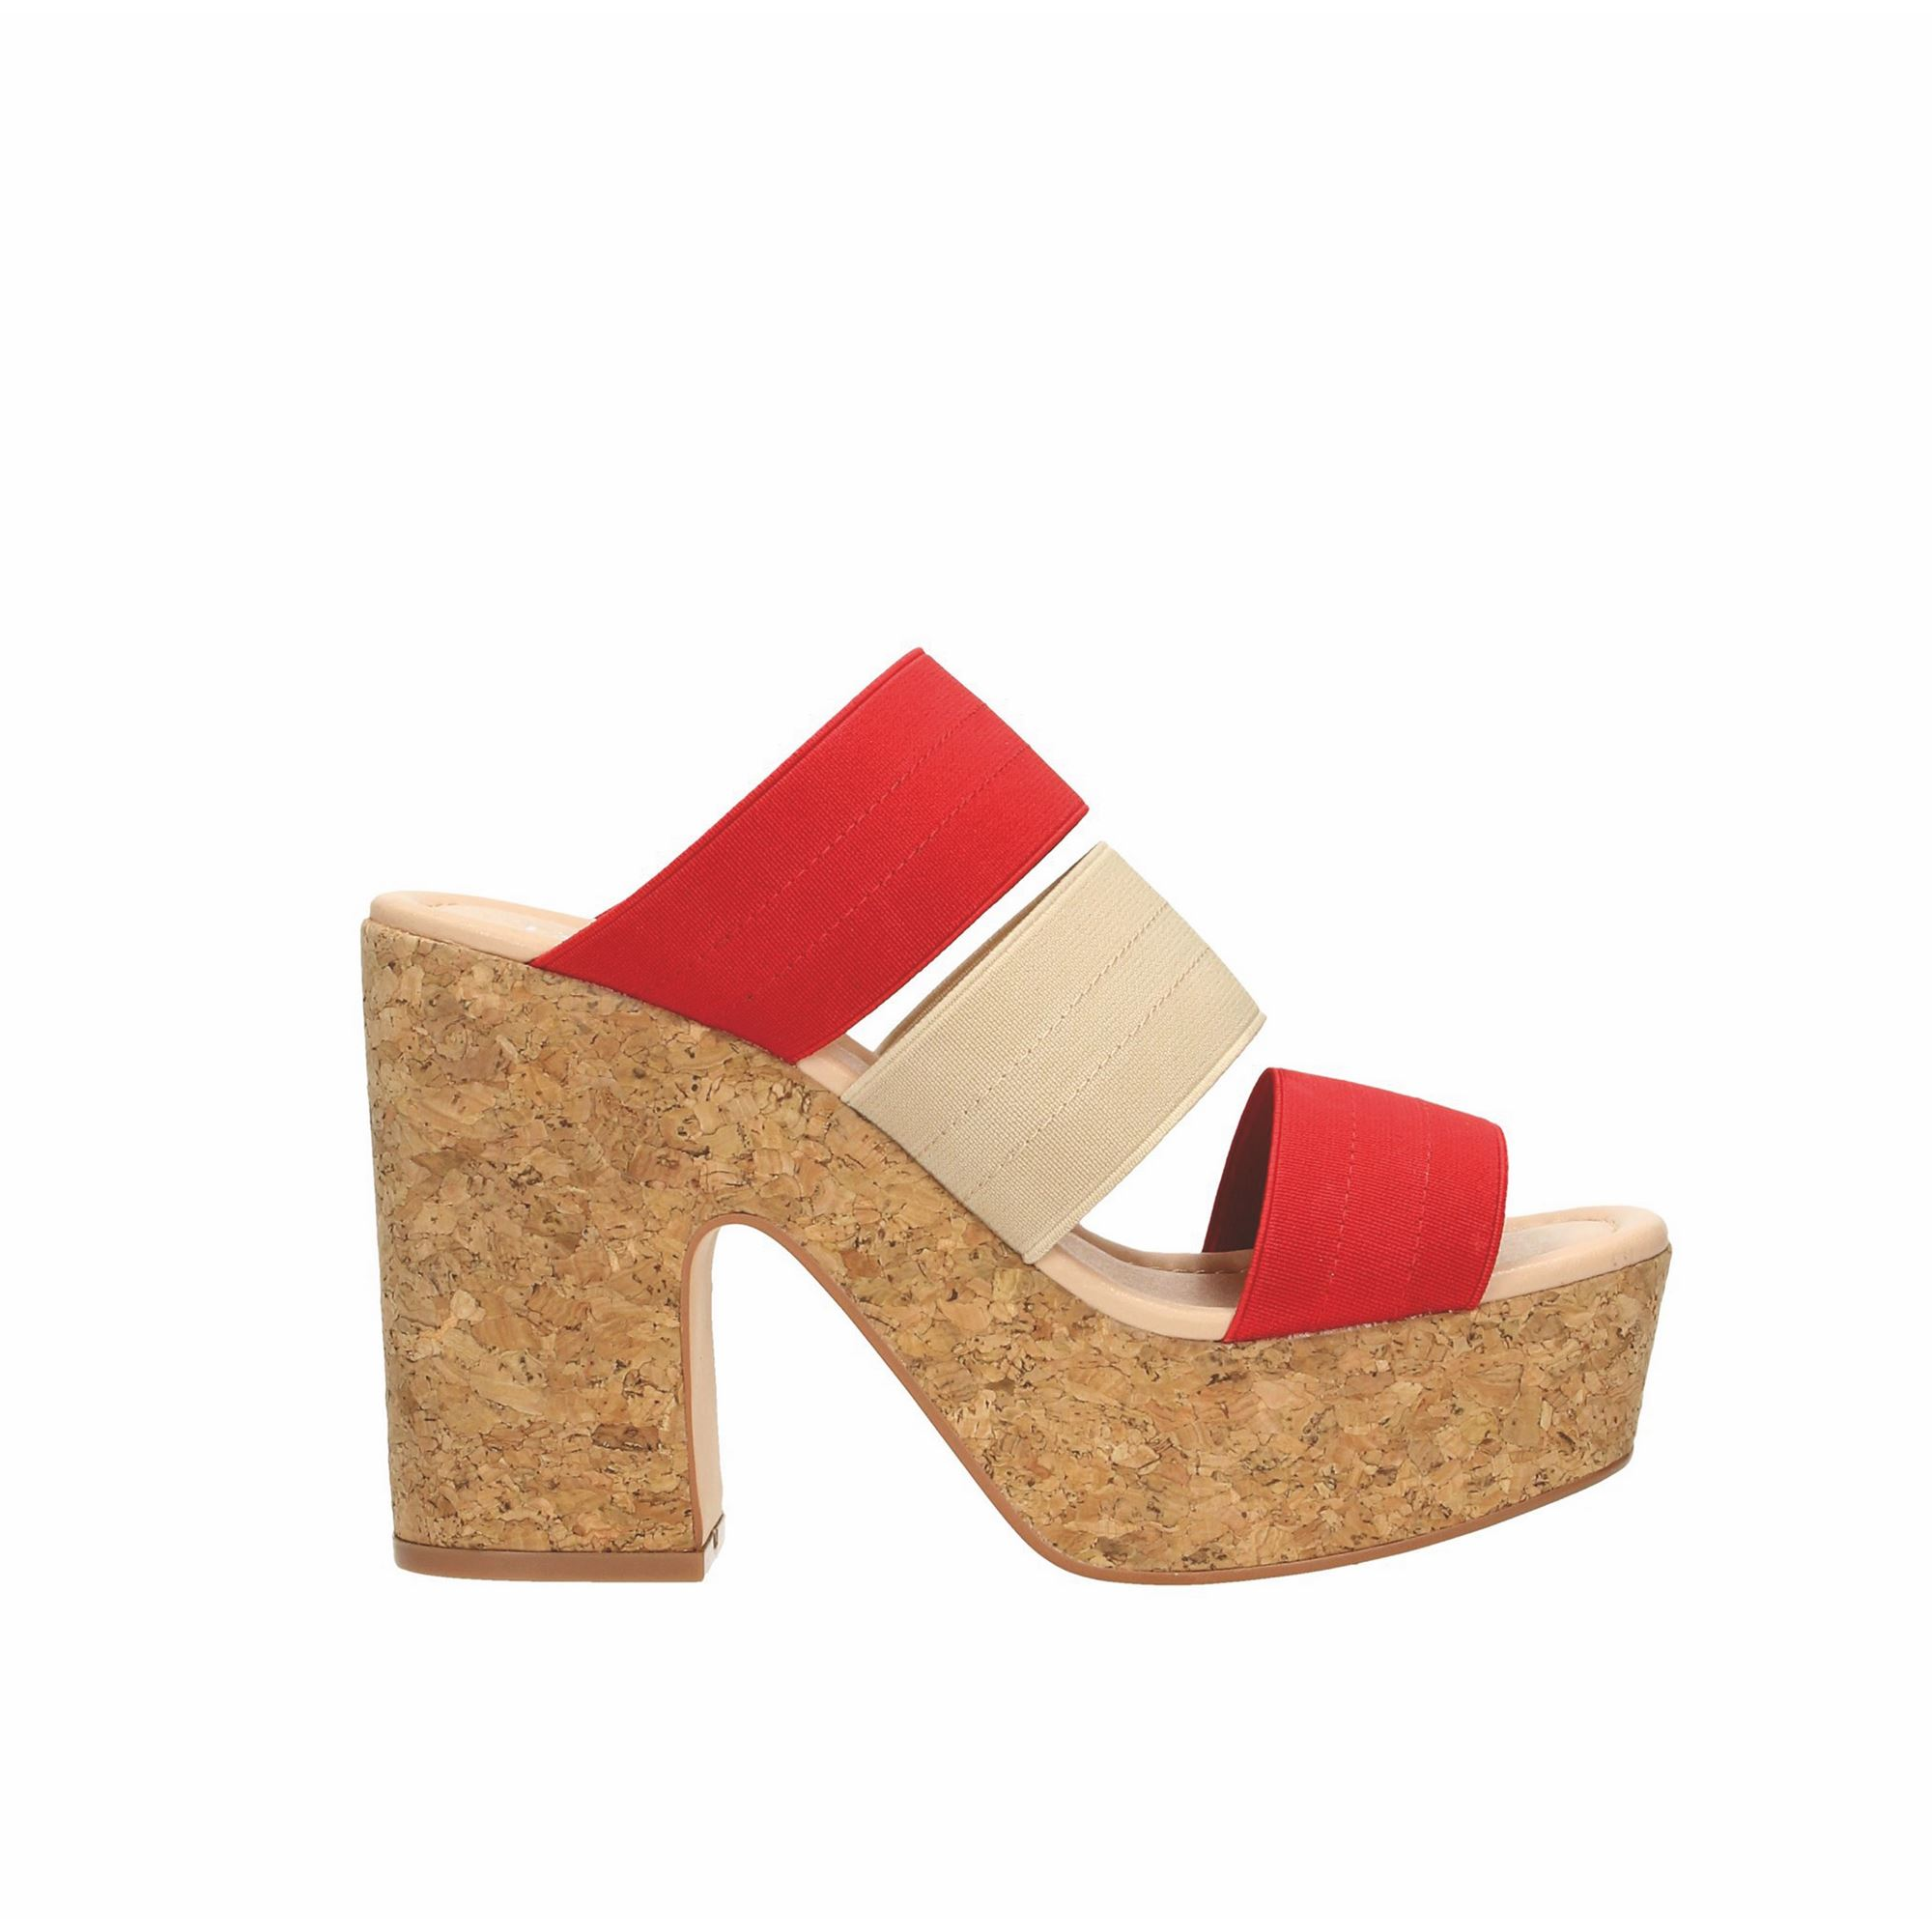 Tata Italia Shoes Woman Sandali Beige/red S3094P-06